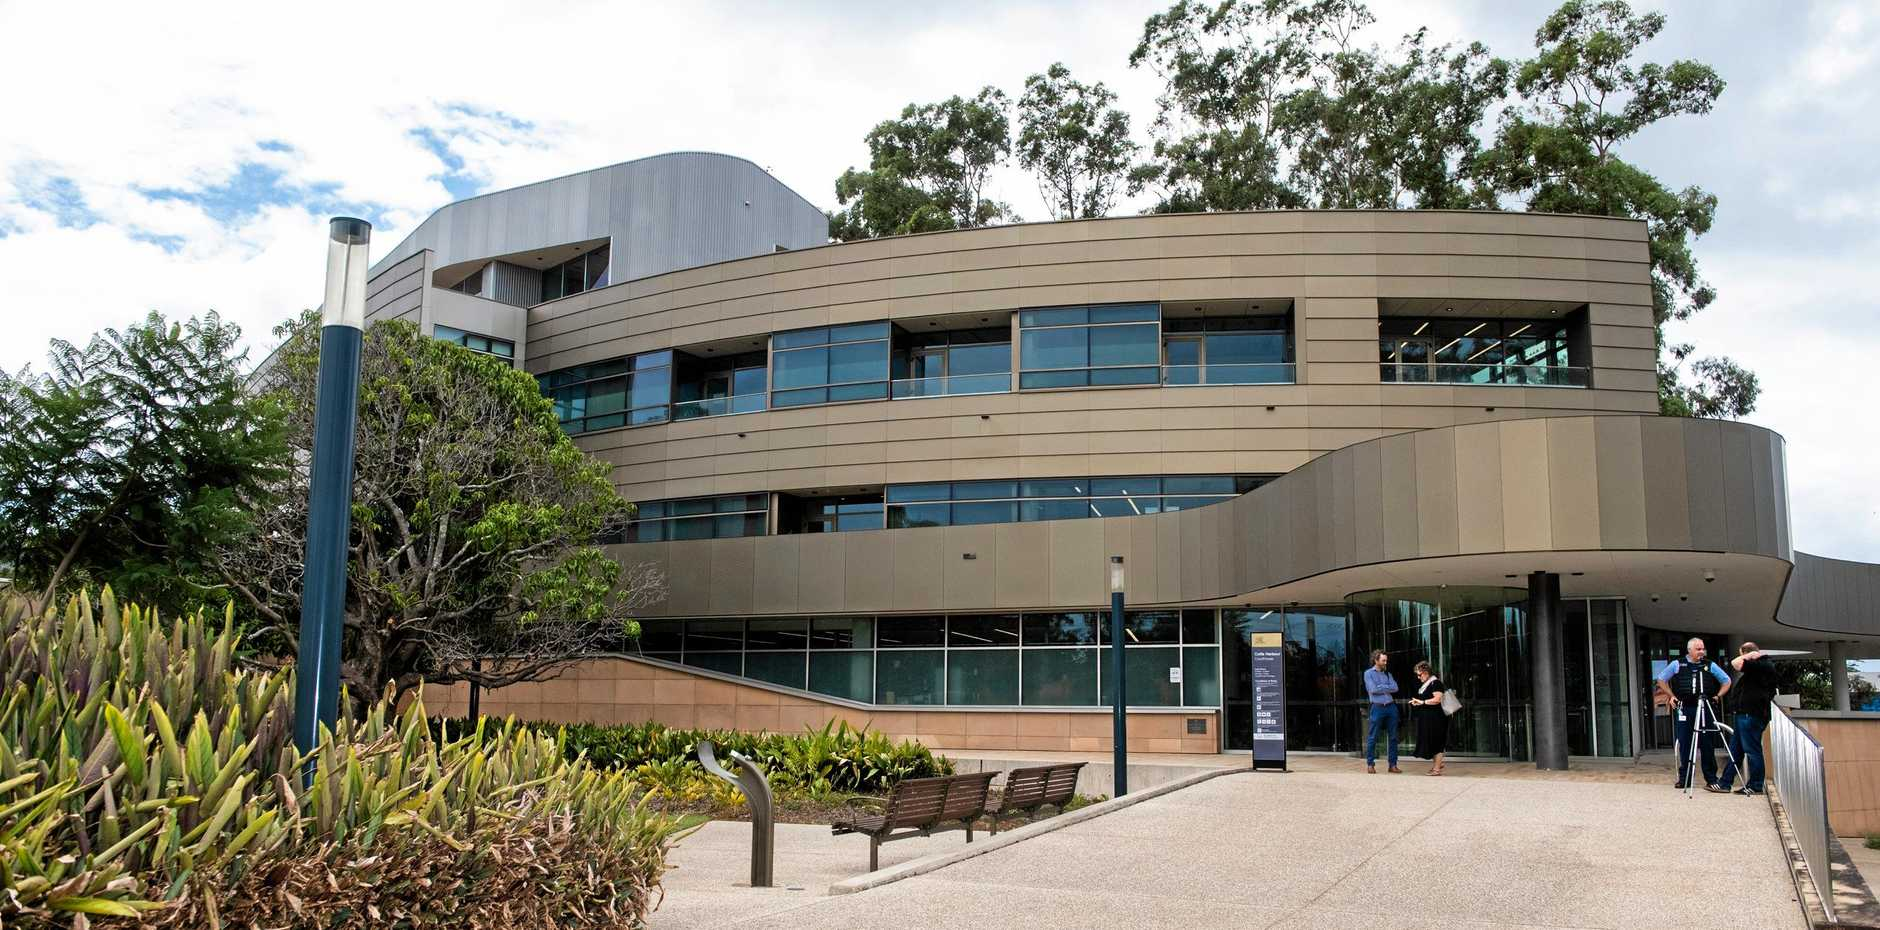 The new Aboriginal Legal Service will be almost a 1km from the Coffs Harbour Court House, at 203 Rose Ave.